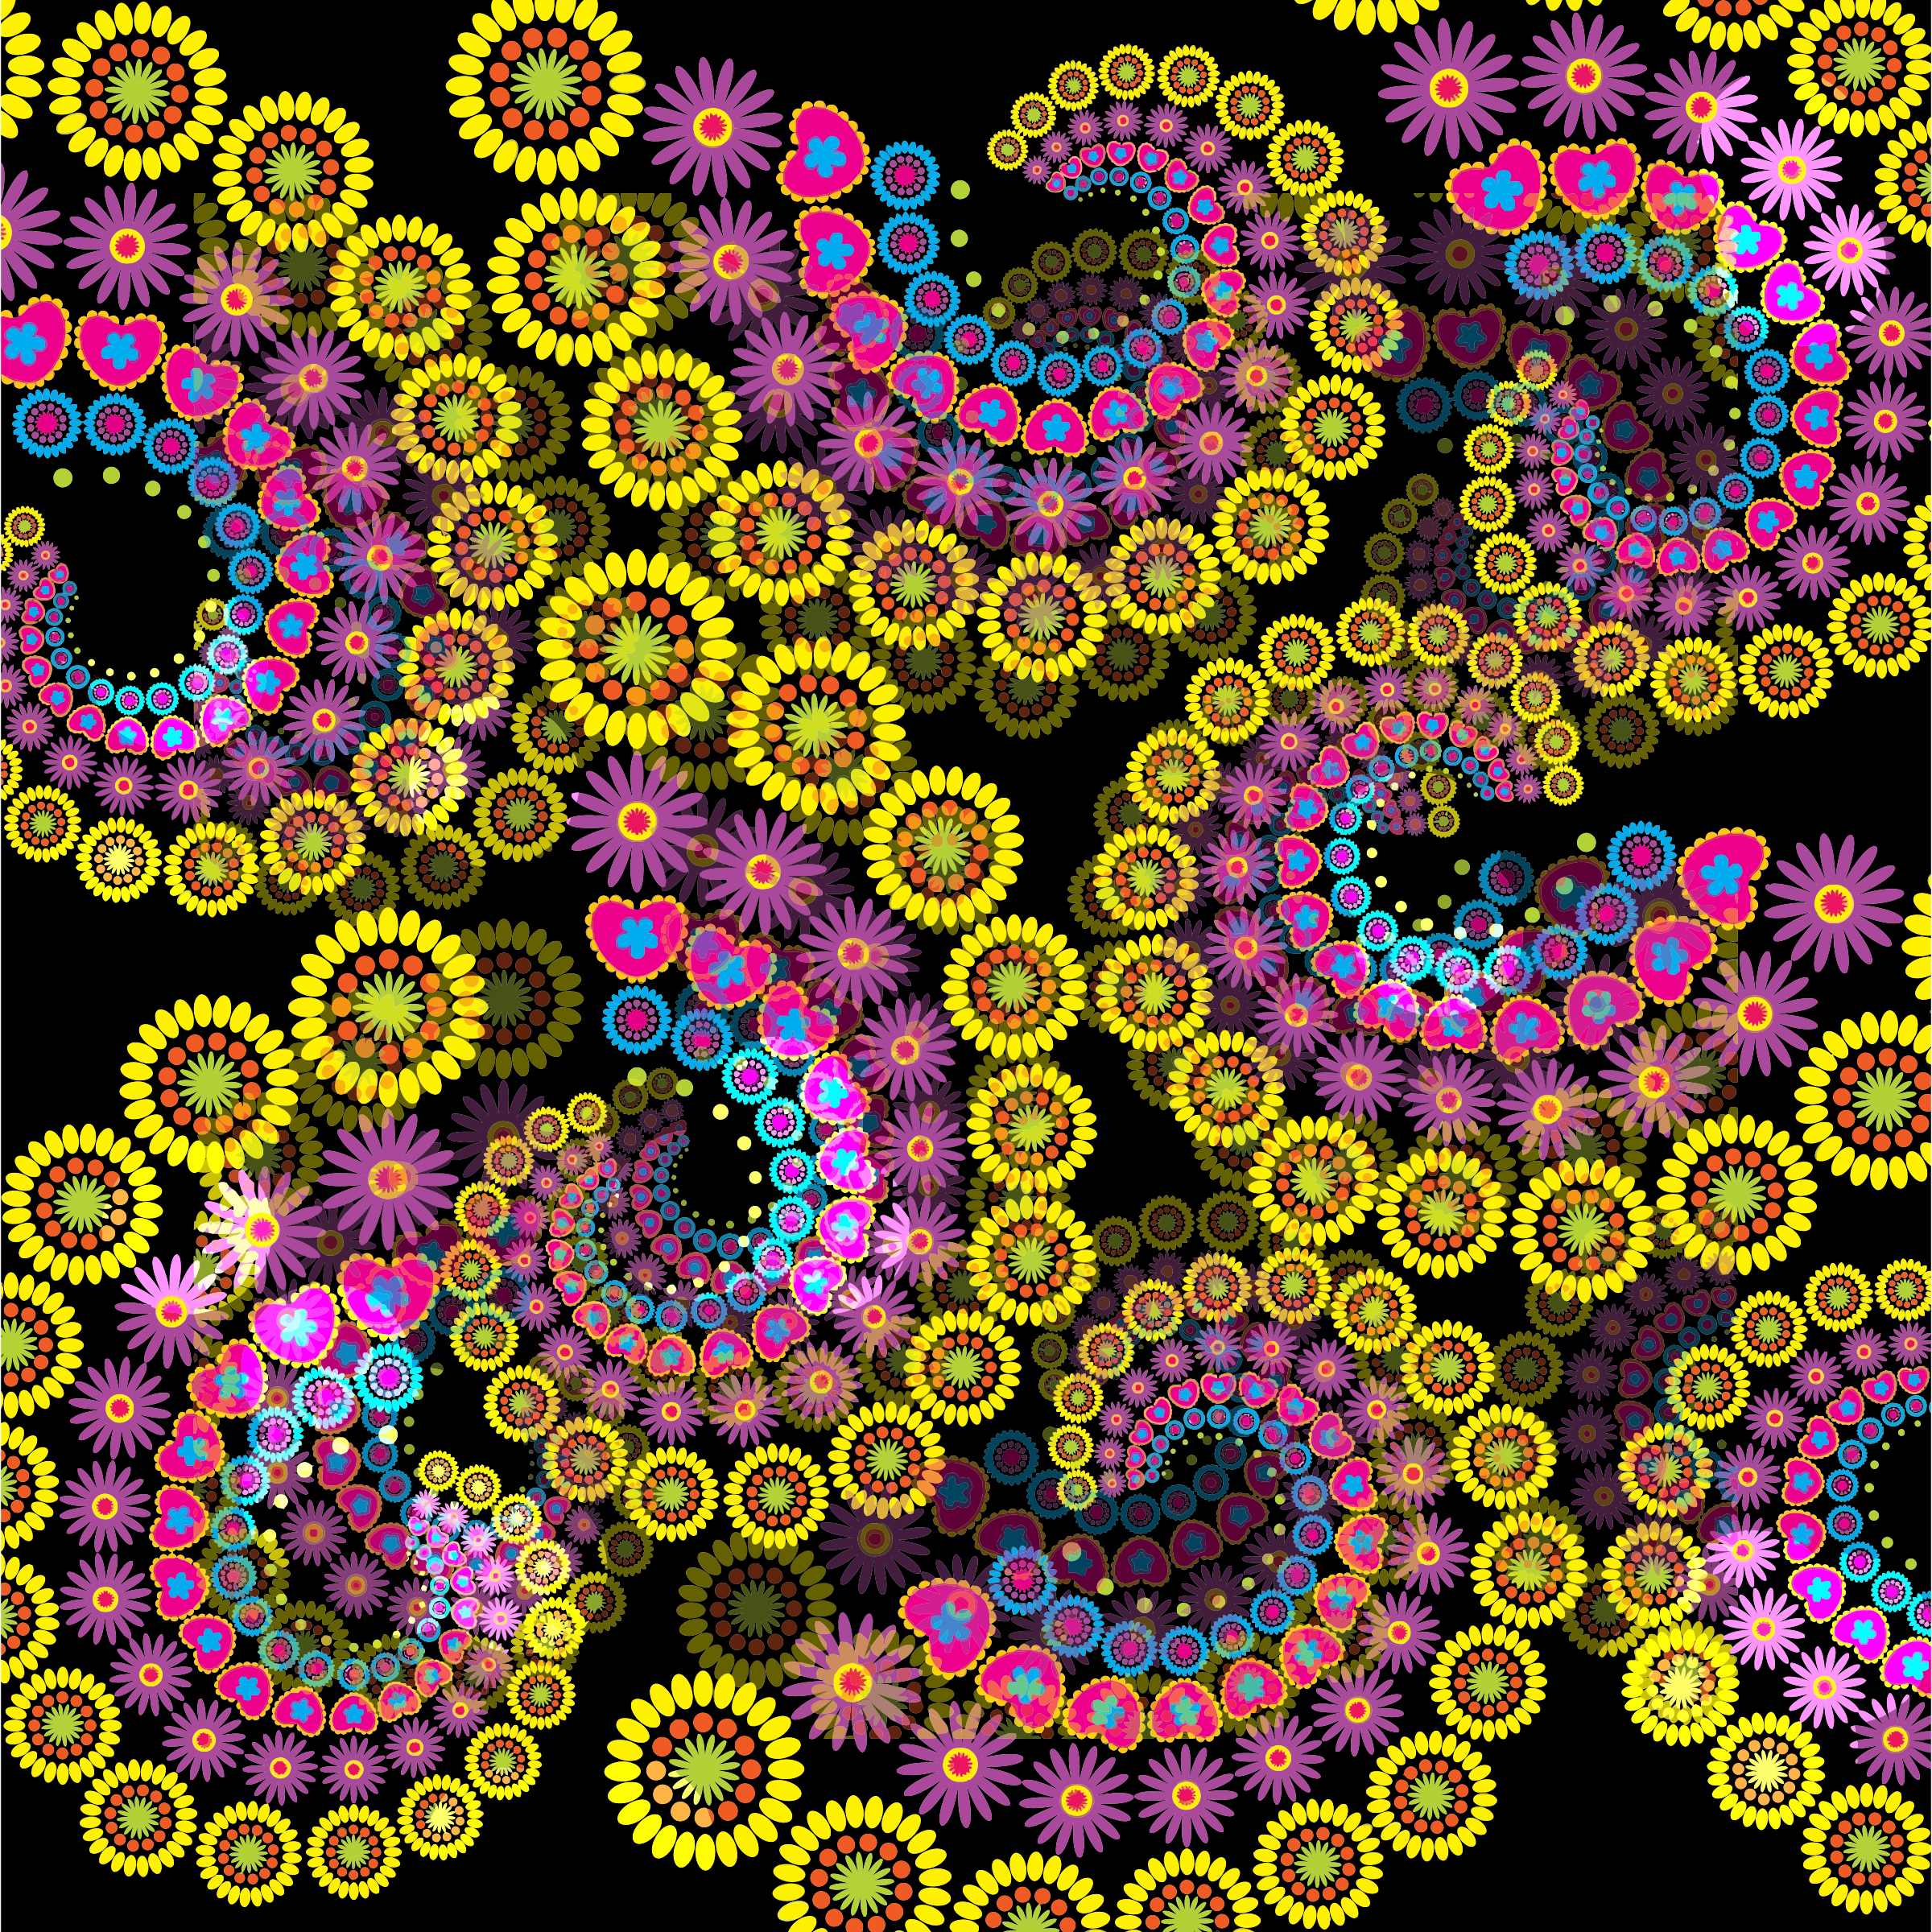 Spiral Floral Fractal Background by GDJ